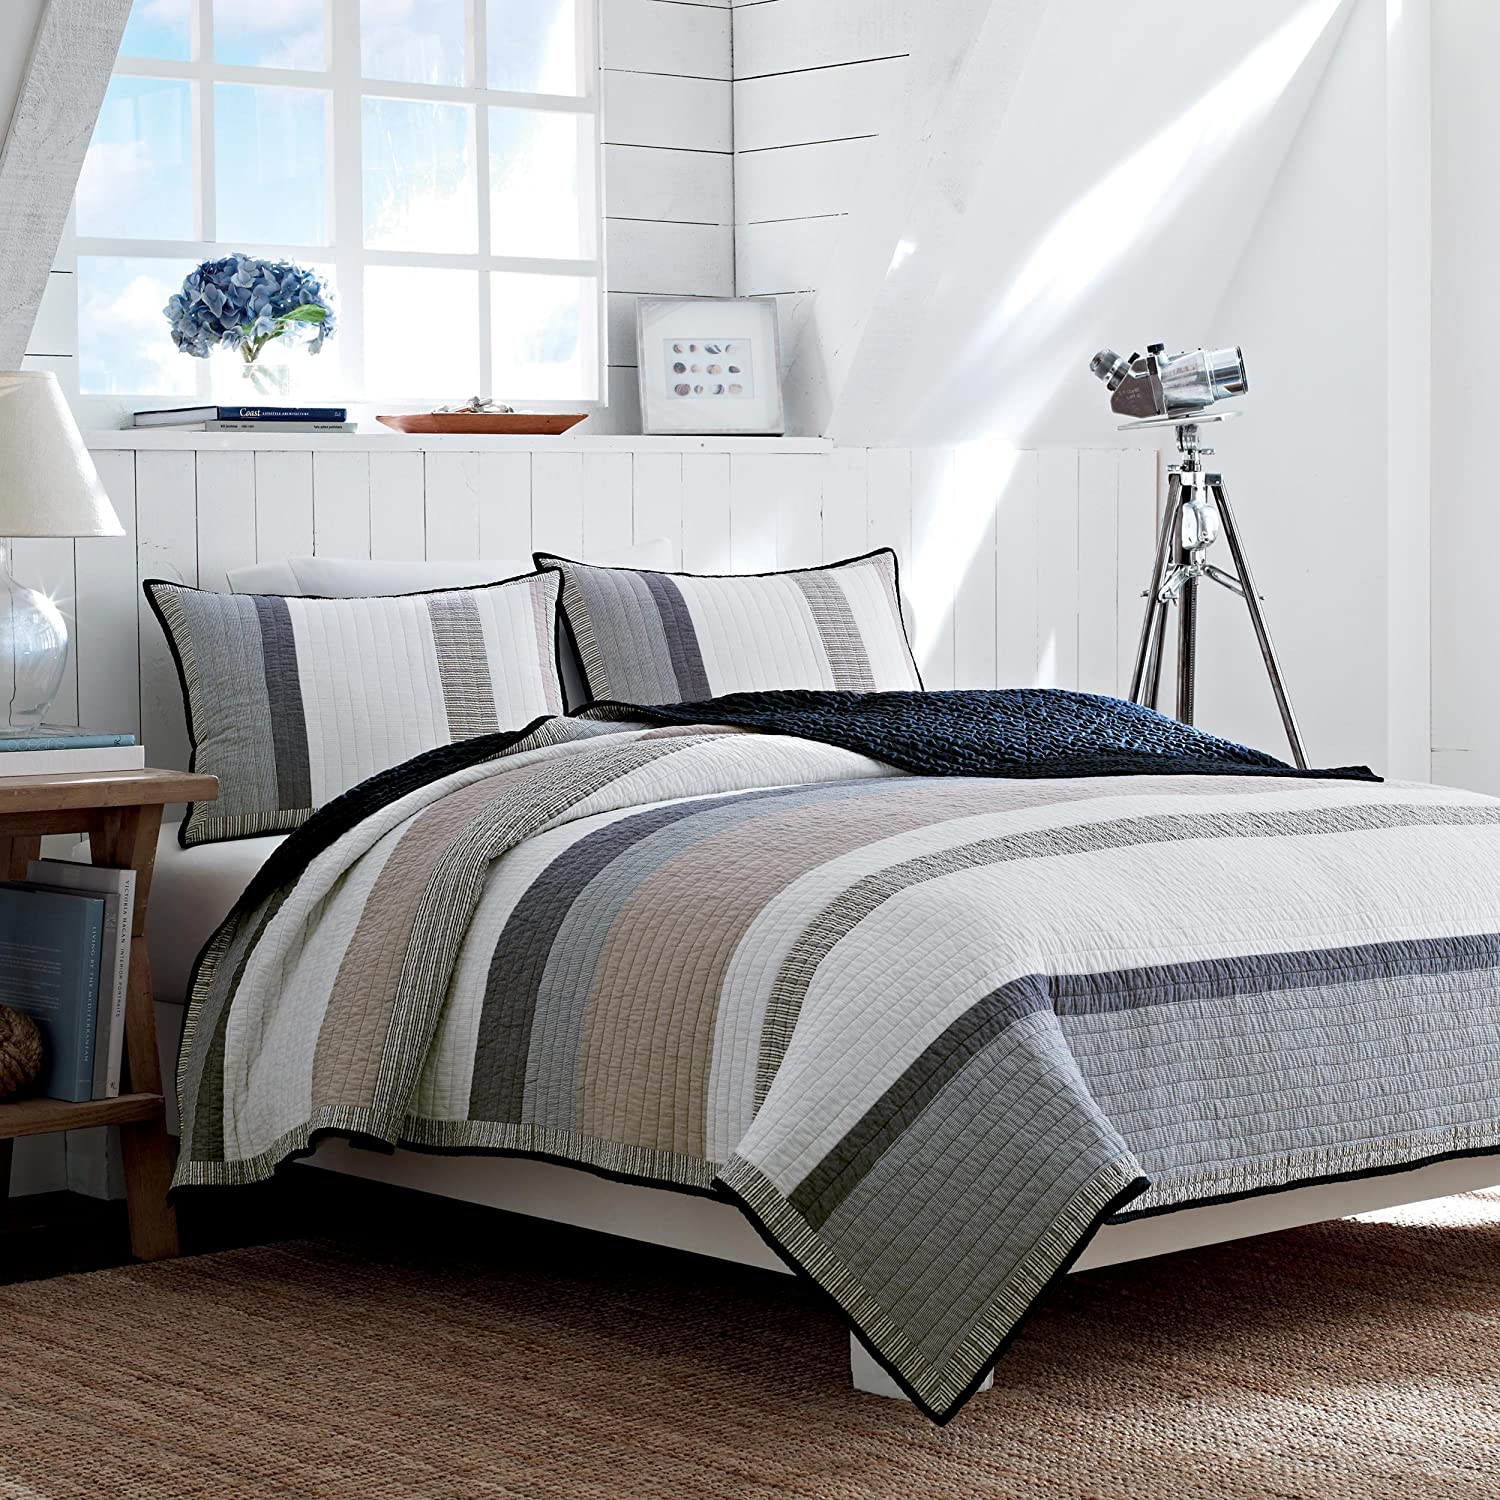 Amazon.com: Nautica Tideway Reversible Quilt, Full/Queen, Tan/Grey ... : quilts and coverlets queen size - Adamdwight.com